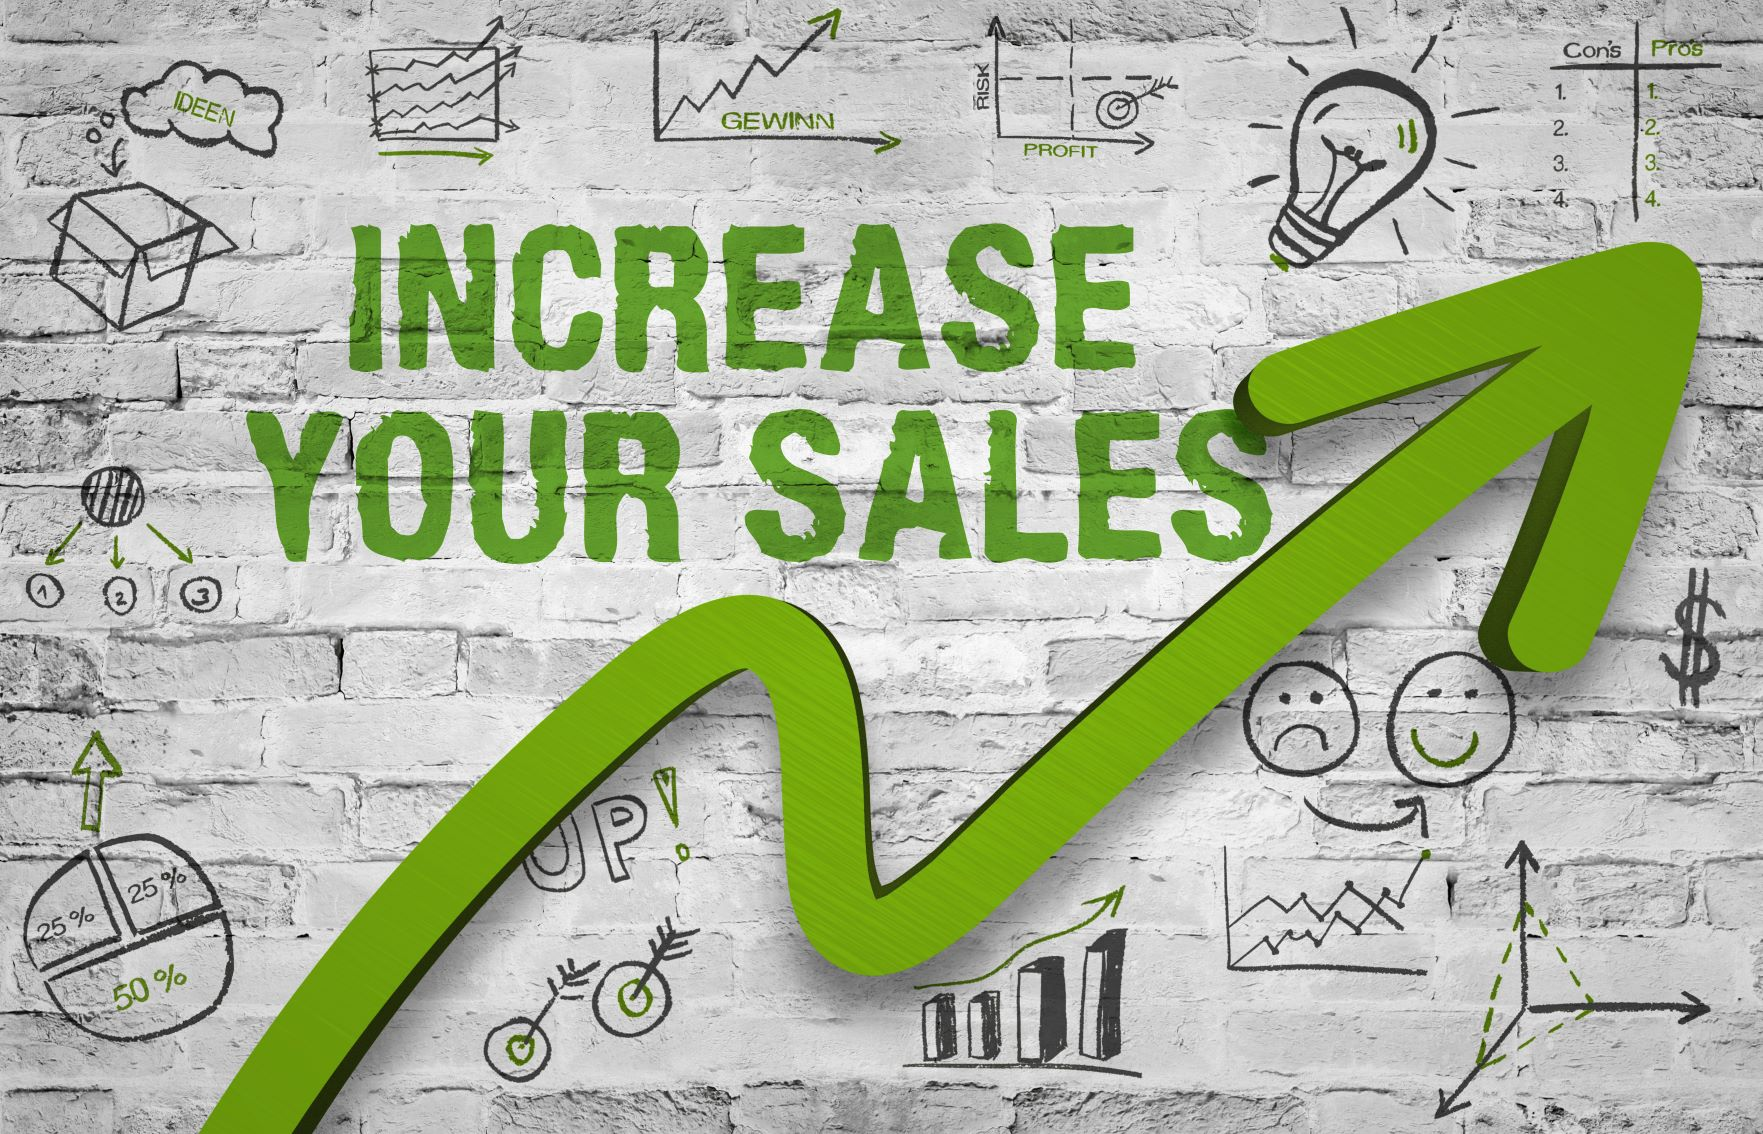 B2B Marketing Strategies To Increase Your Sales - NearFile.Com